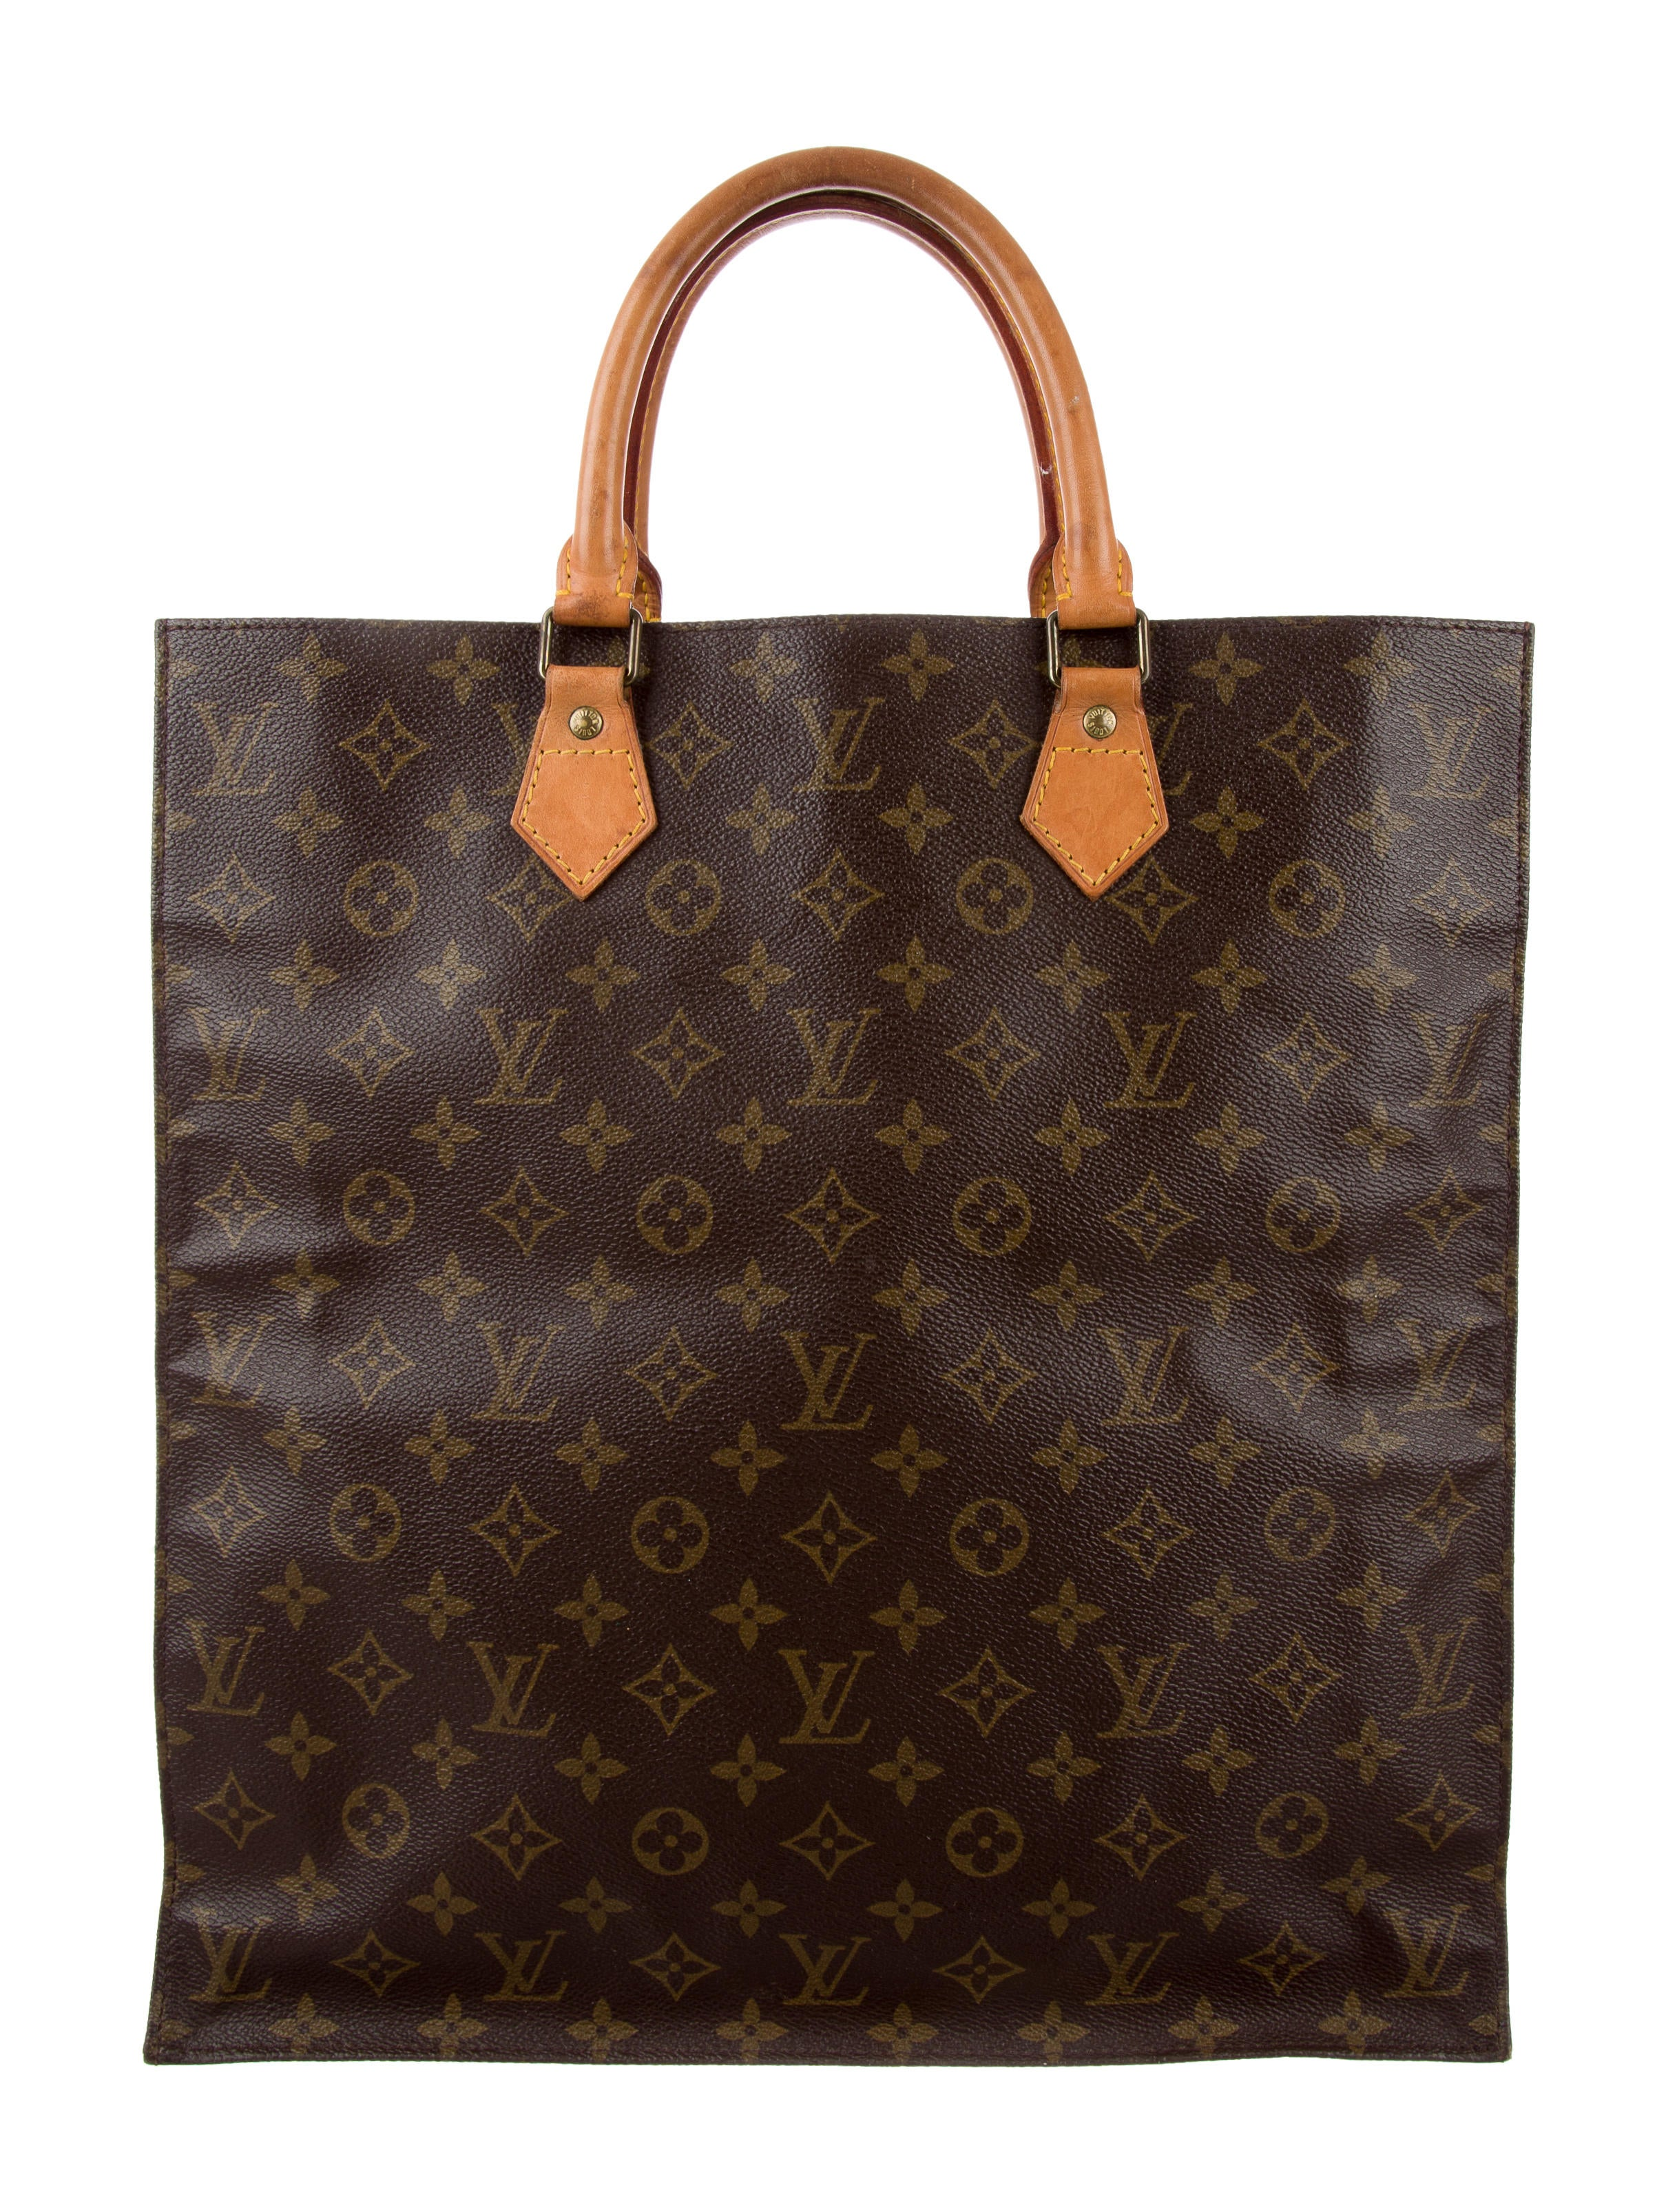 Louis vuitton monogram sac plat handbags lou130673 for Louis vuitton monogram miroir sac plat